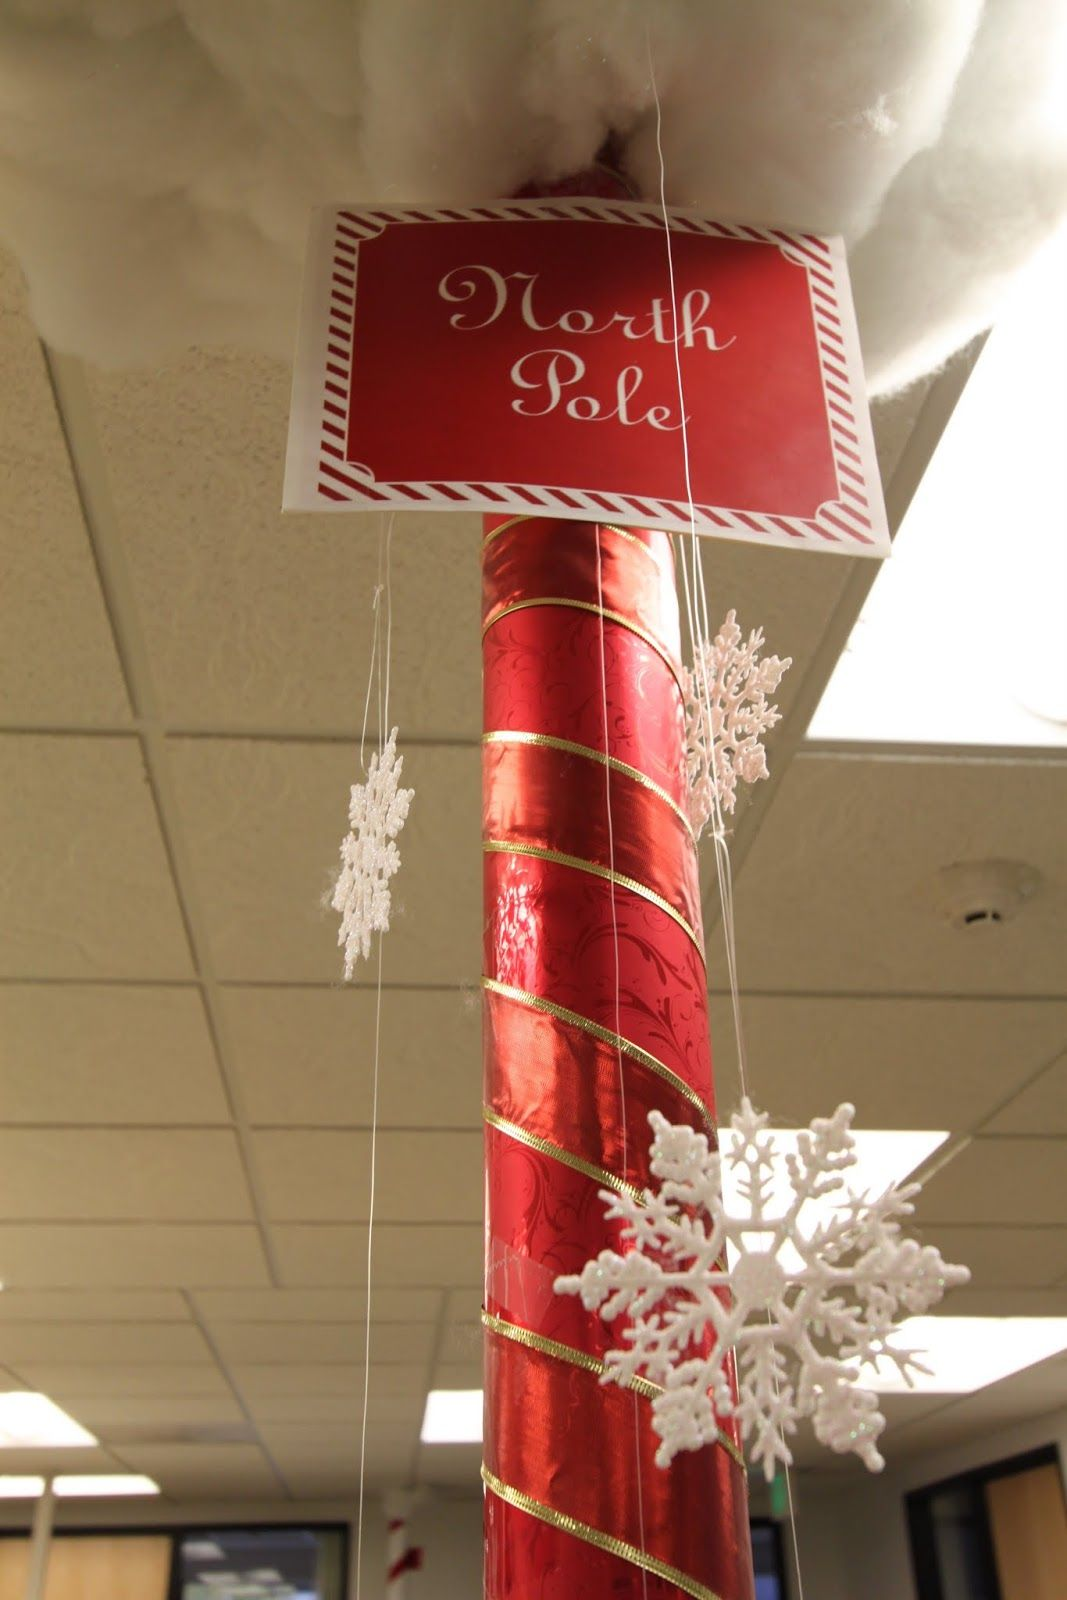 north pole decorating ideas we could do something like this with one of the square poles